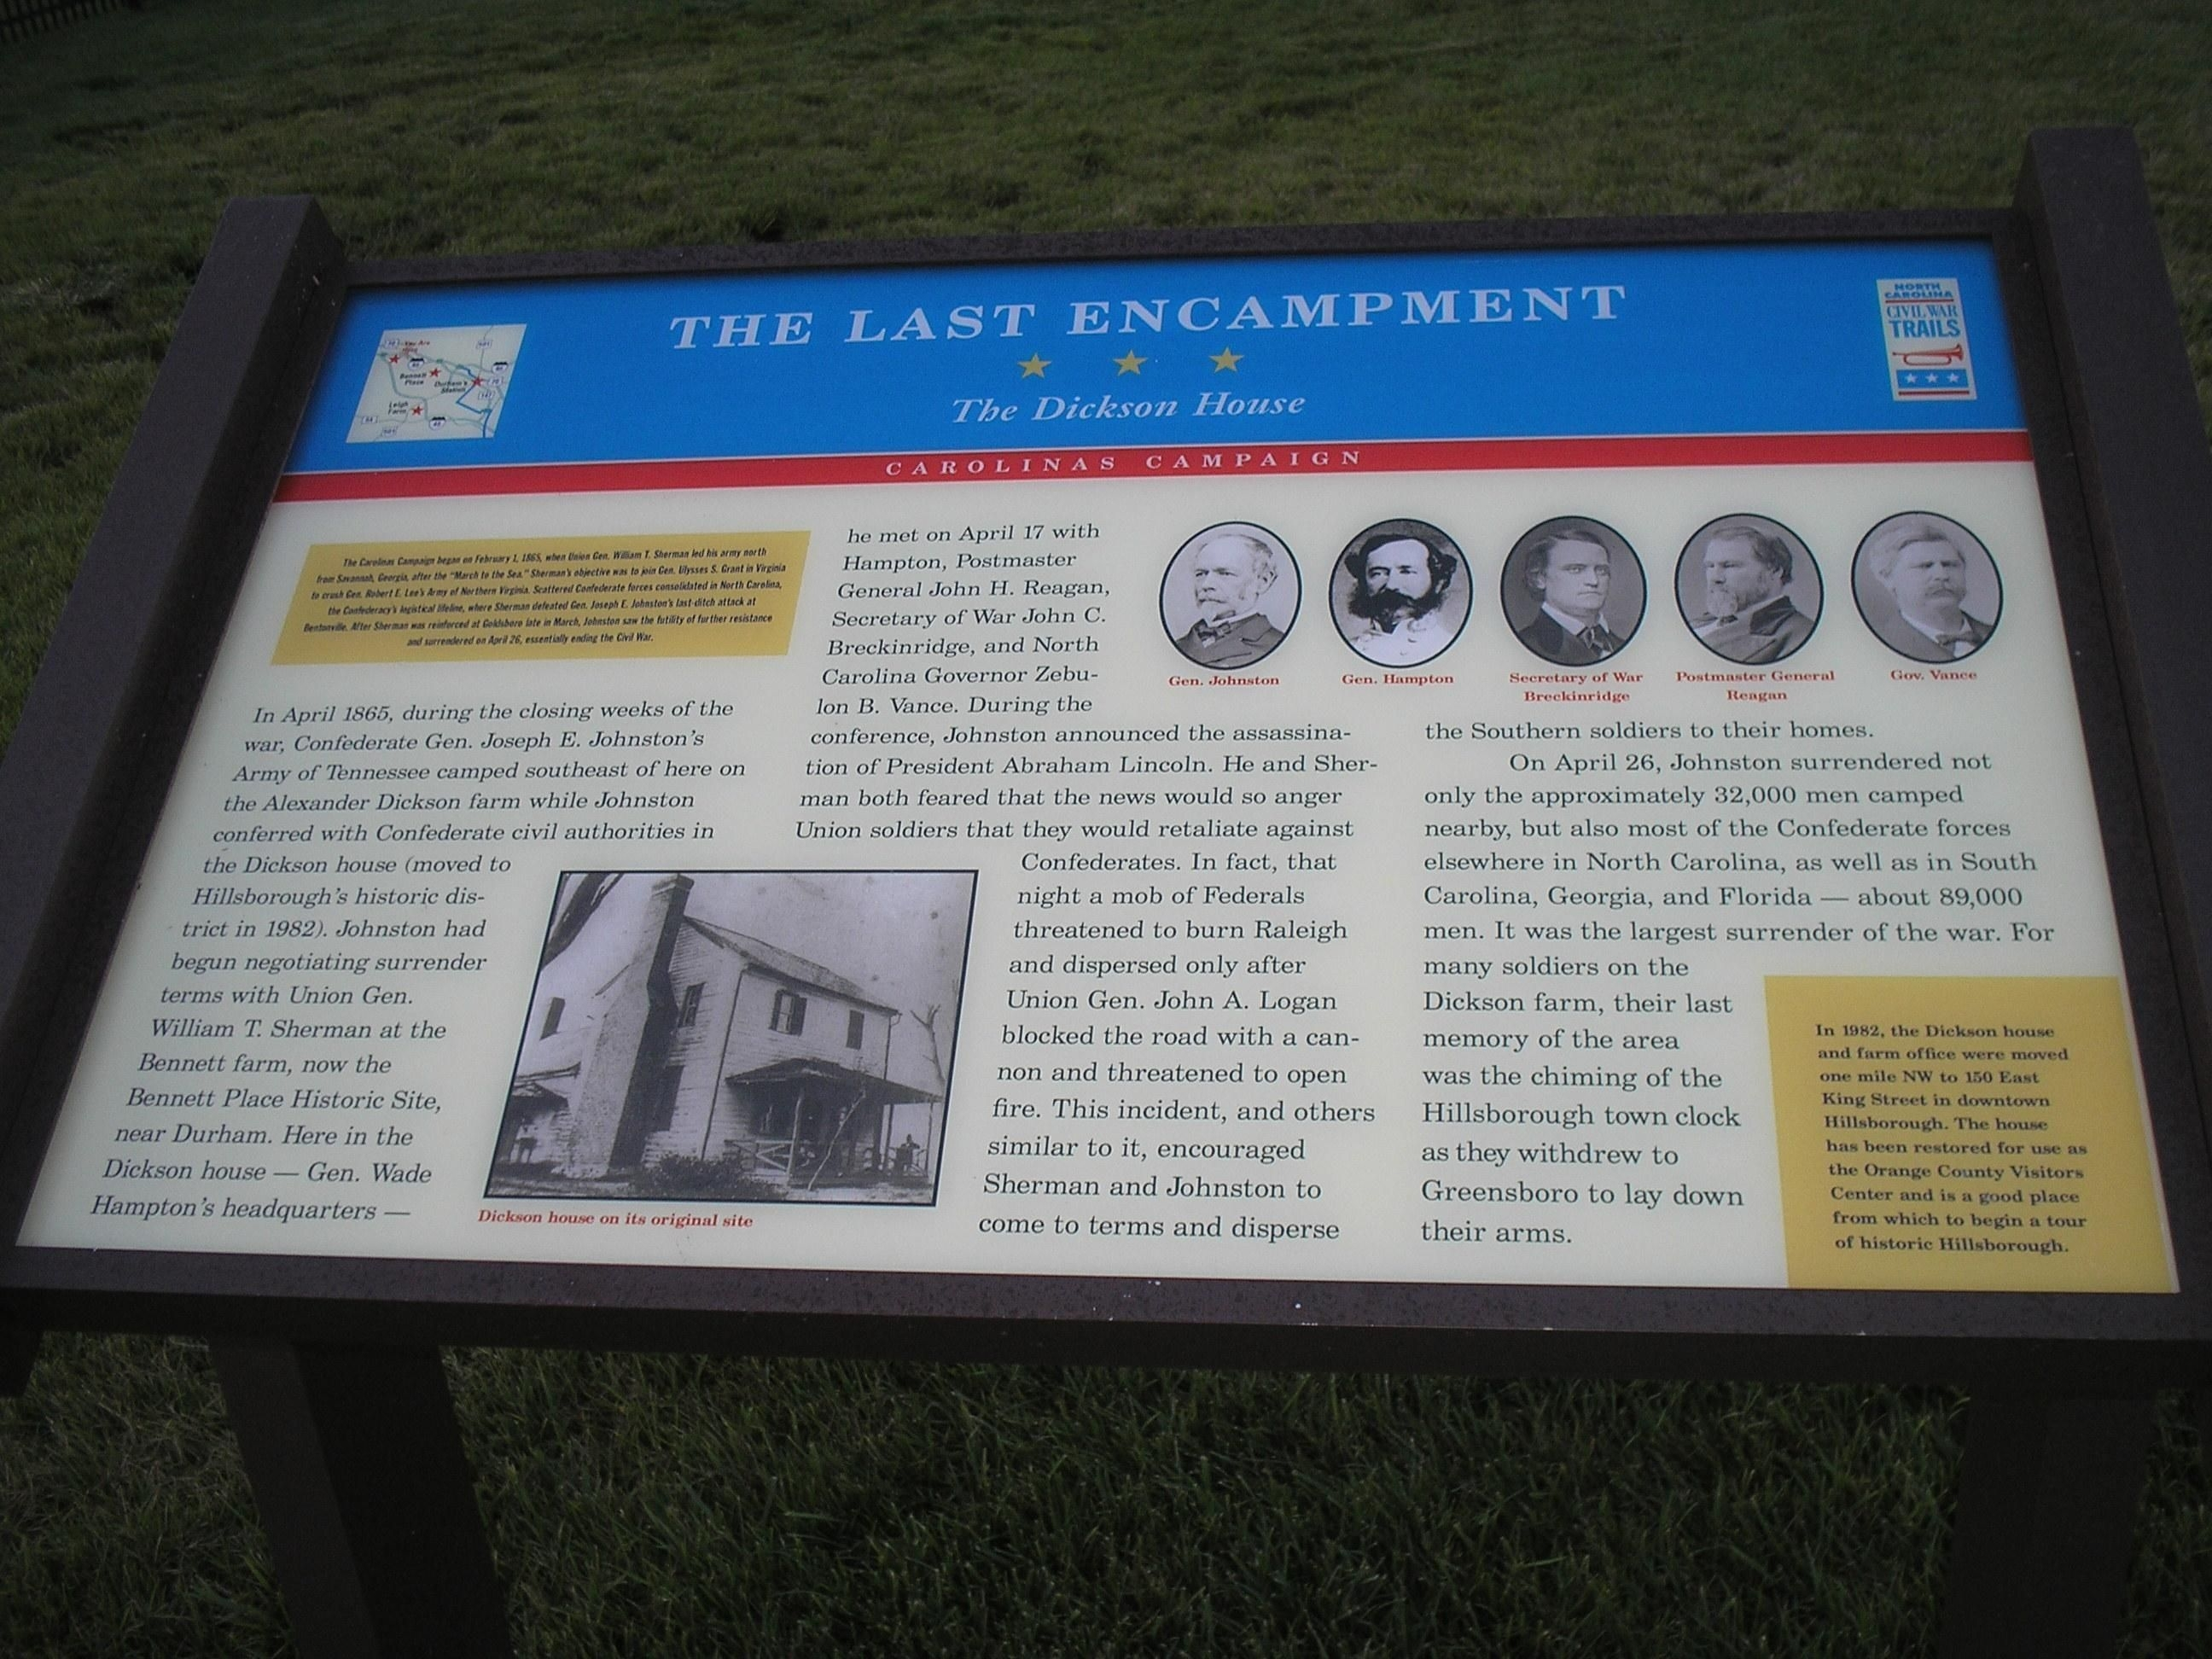 The Last Encampment Marker